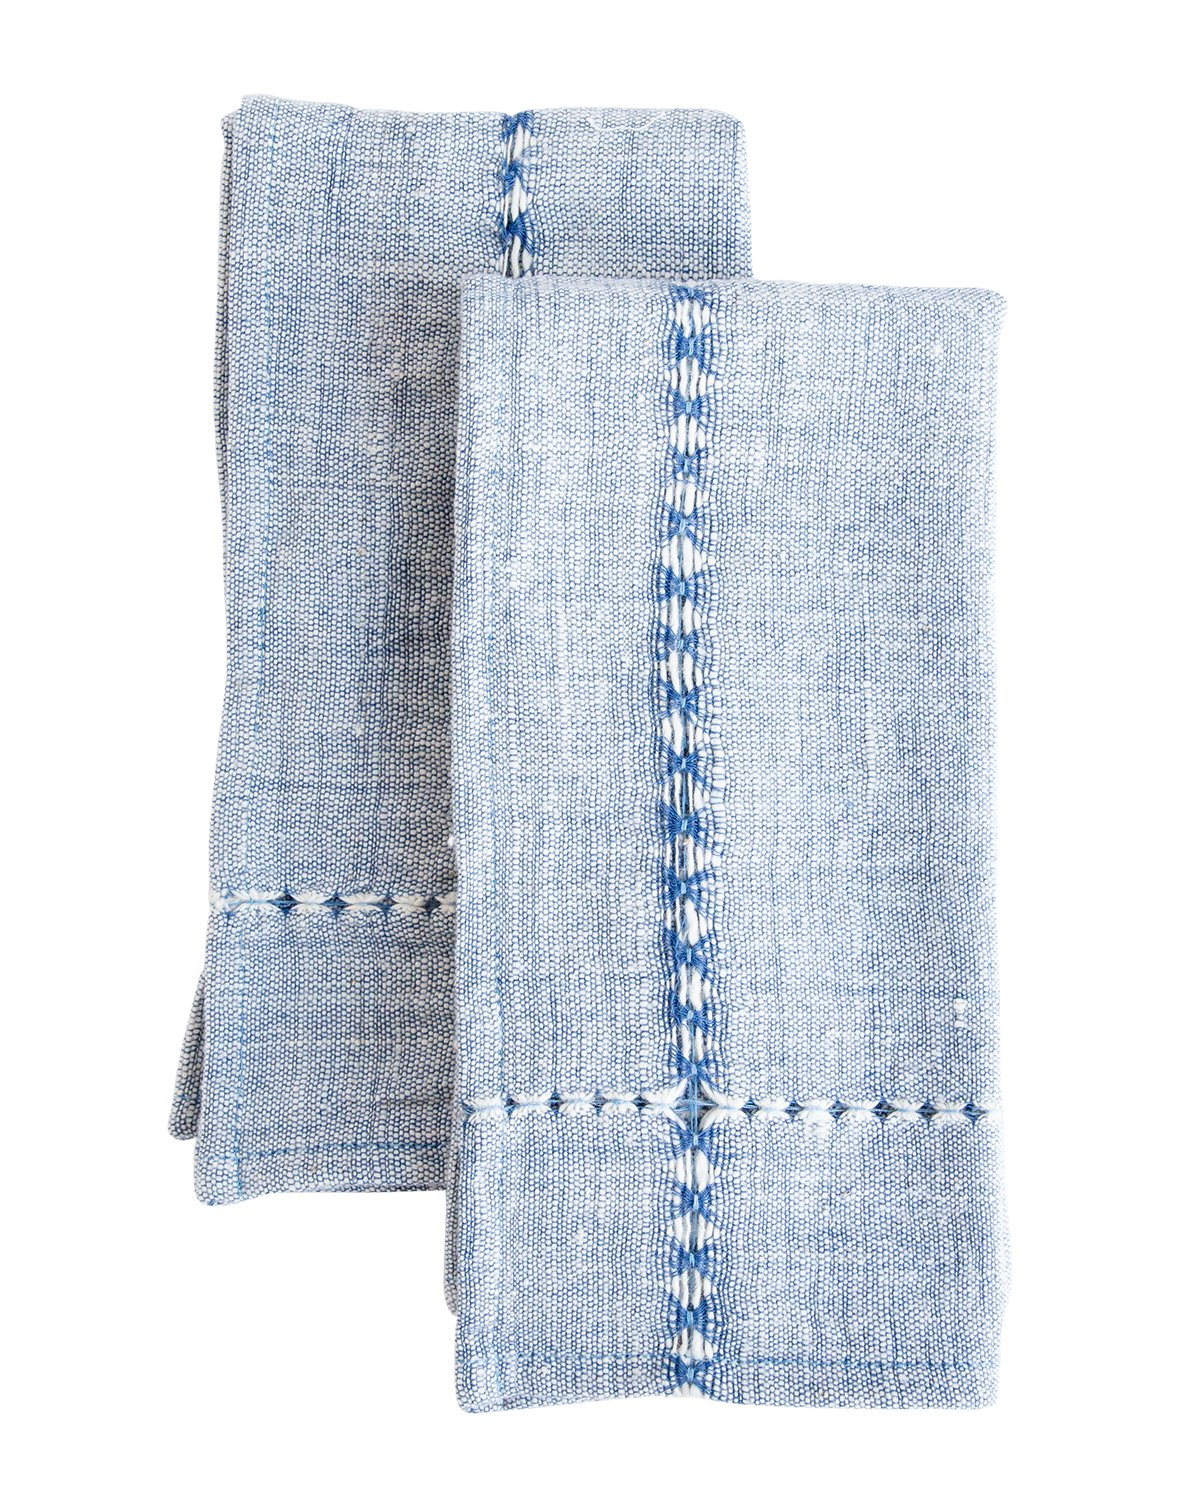 Blue_Pulled_Cotton_Napkins_1.jpg